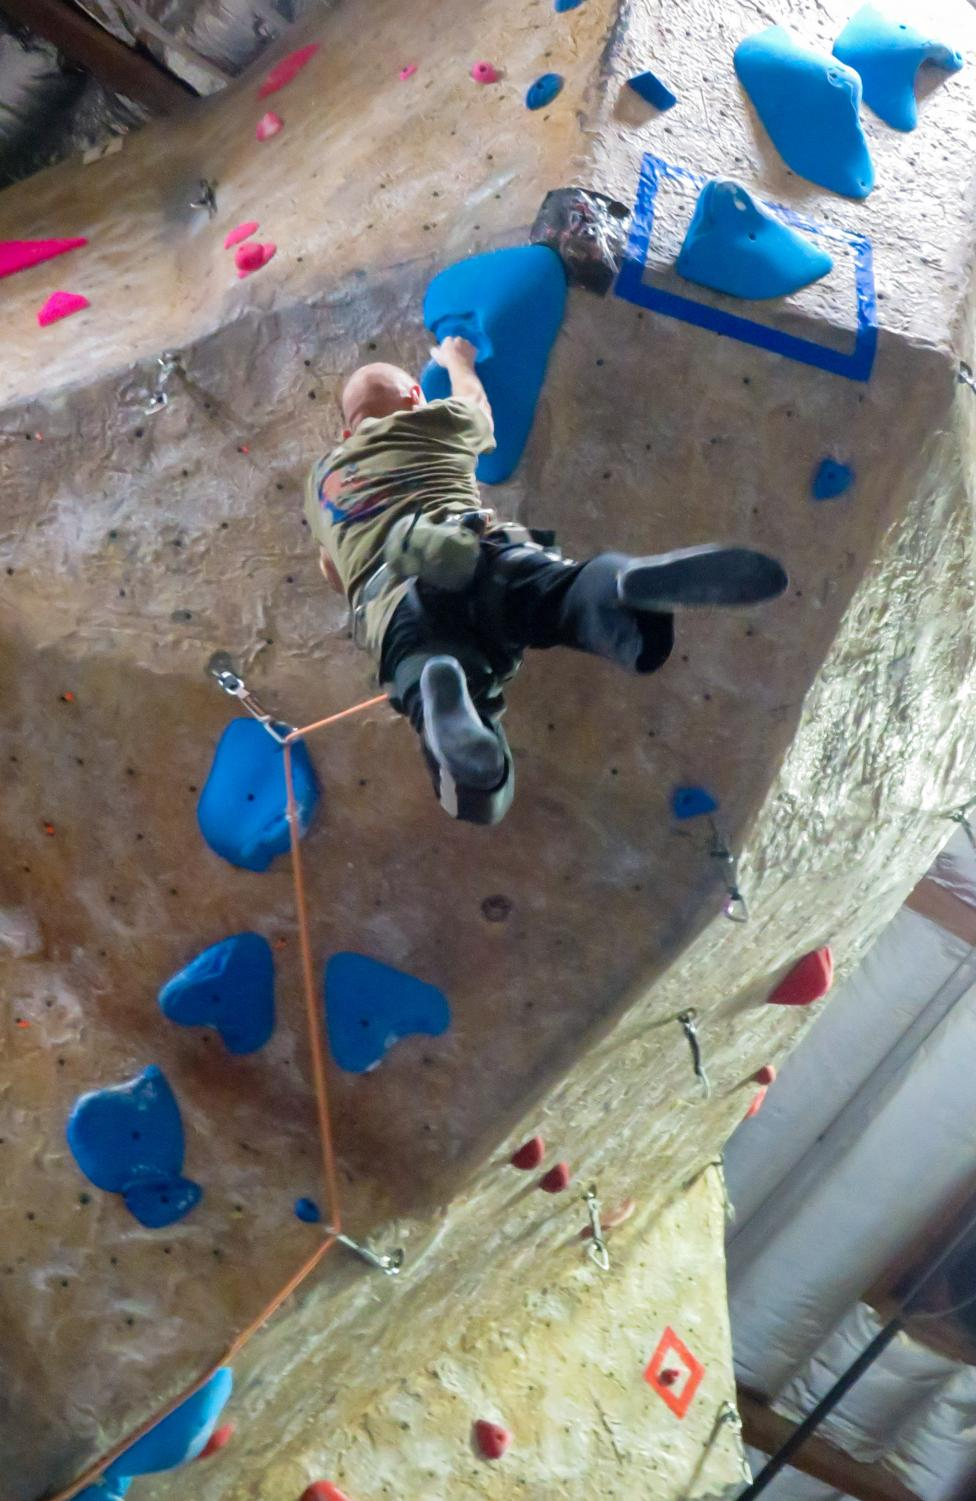 Diablo Rock gym now offers new access perks for DVC students (Pavlina Markova/The Inquirer)